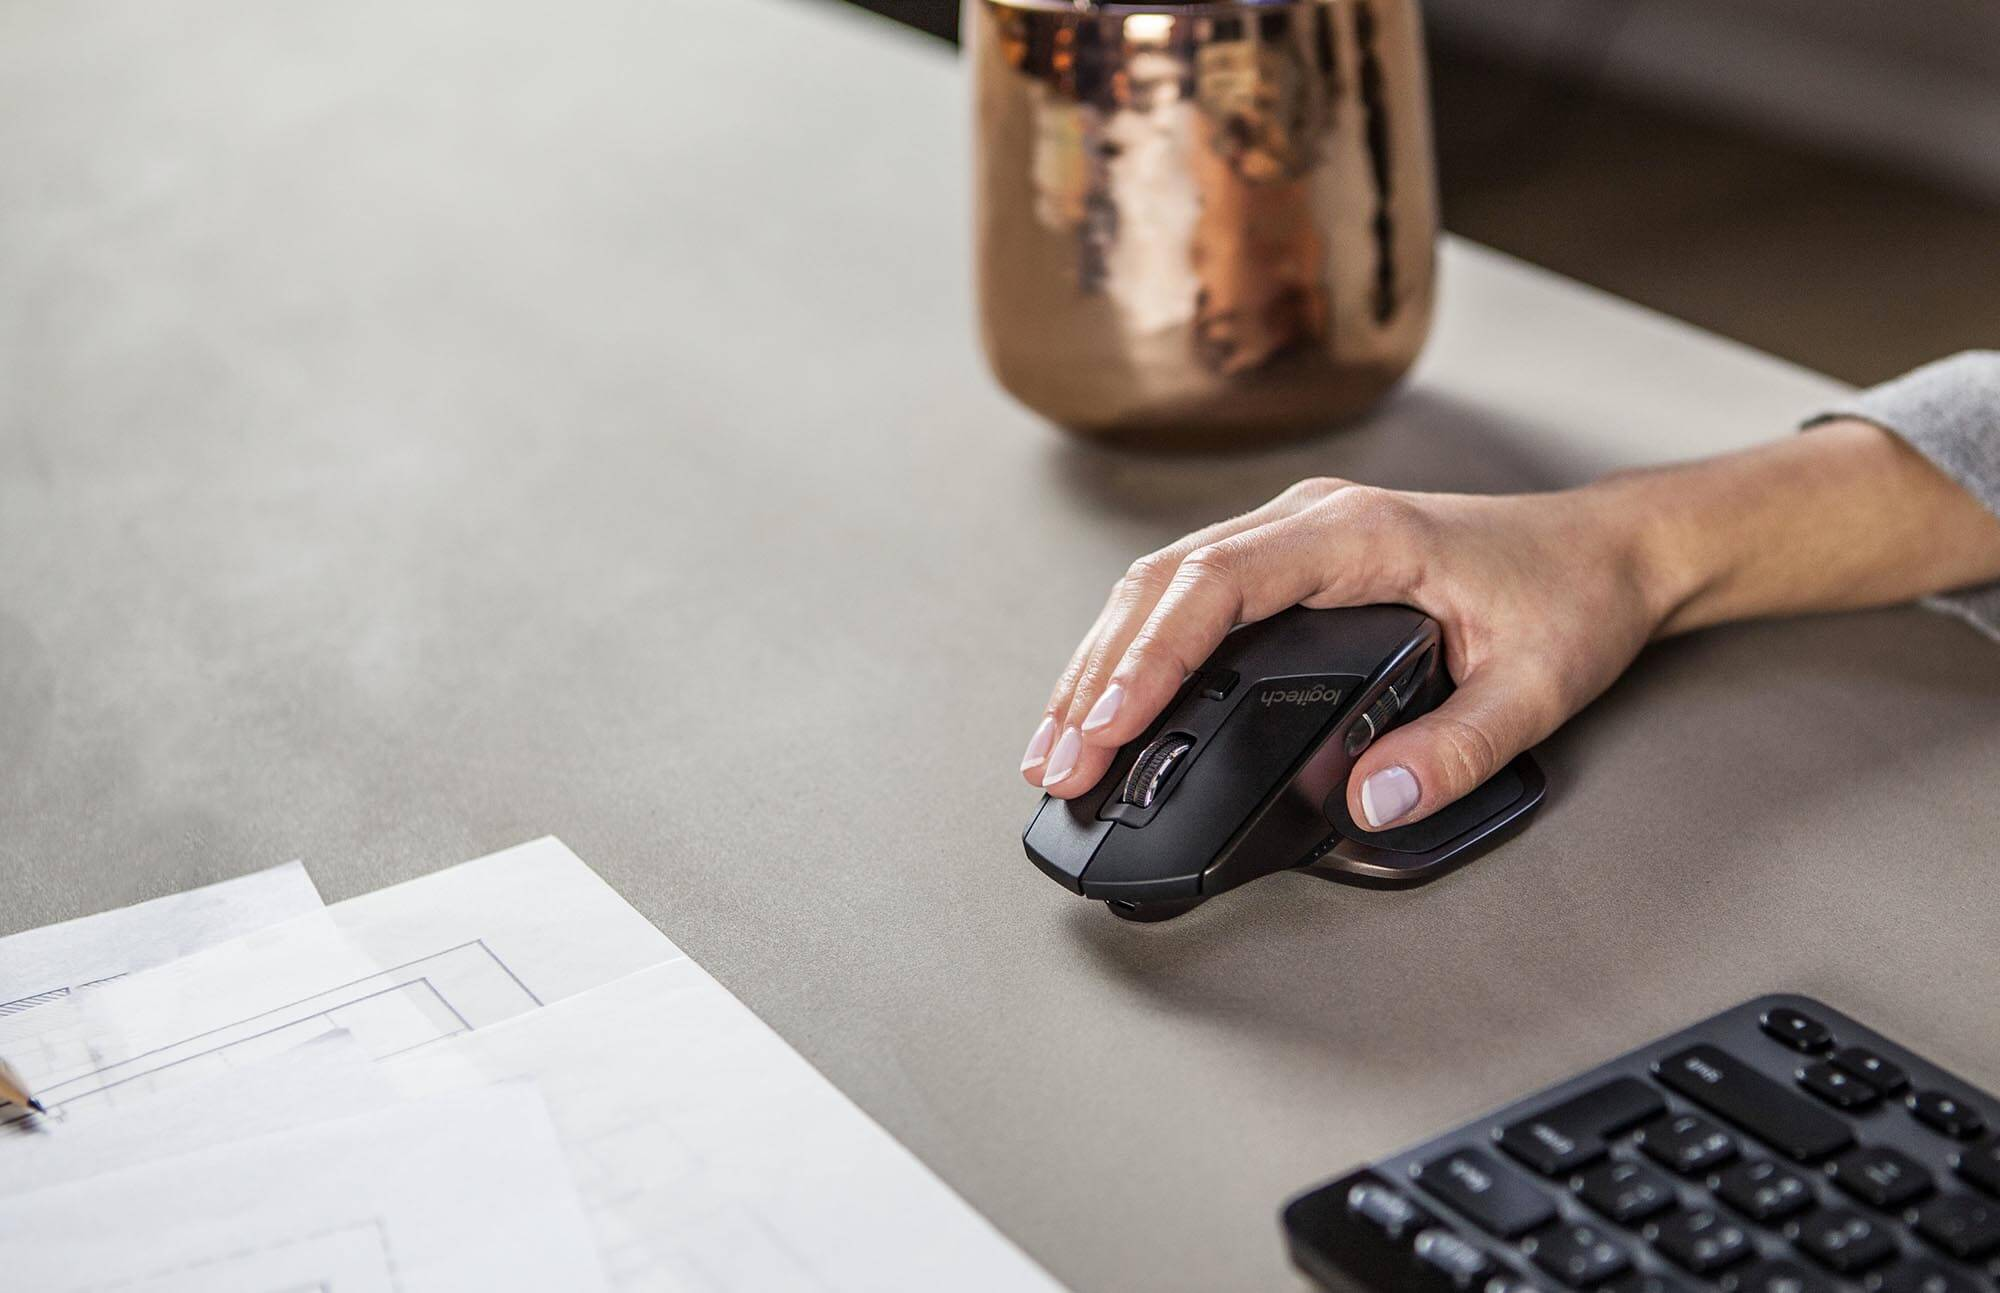 defcb6a83a0 6 Best Wireless Mouse Brands Review in Singapore 2019 - ProductNation